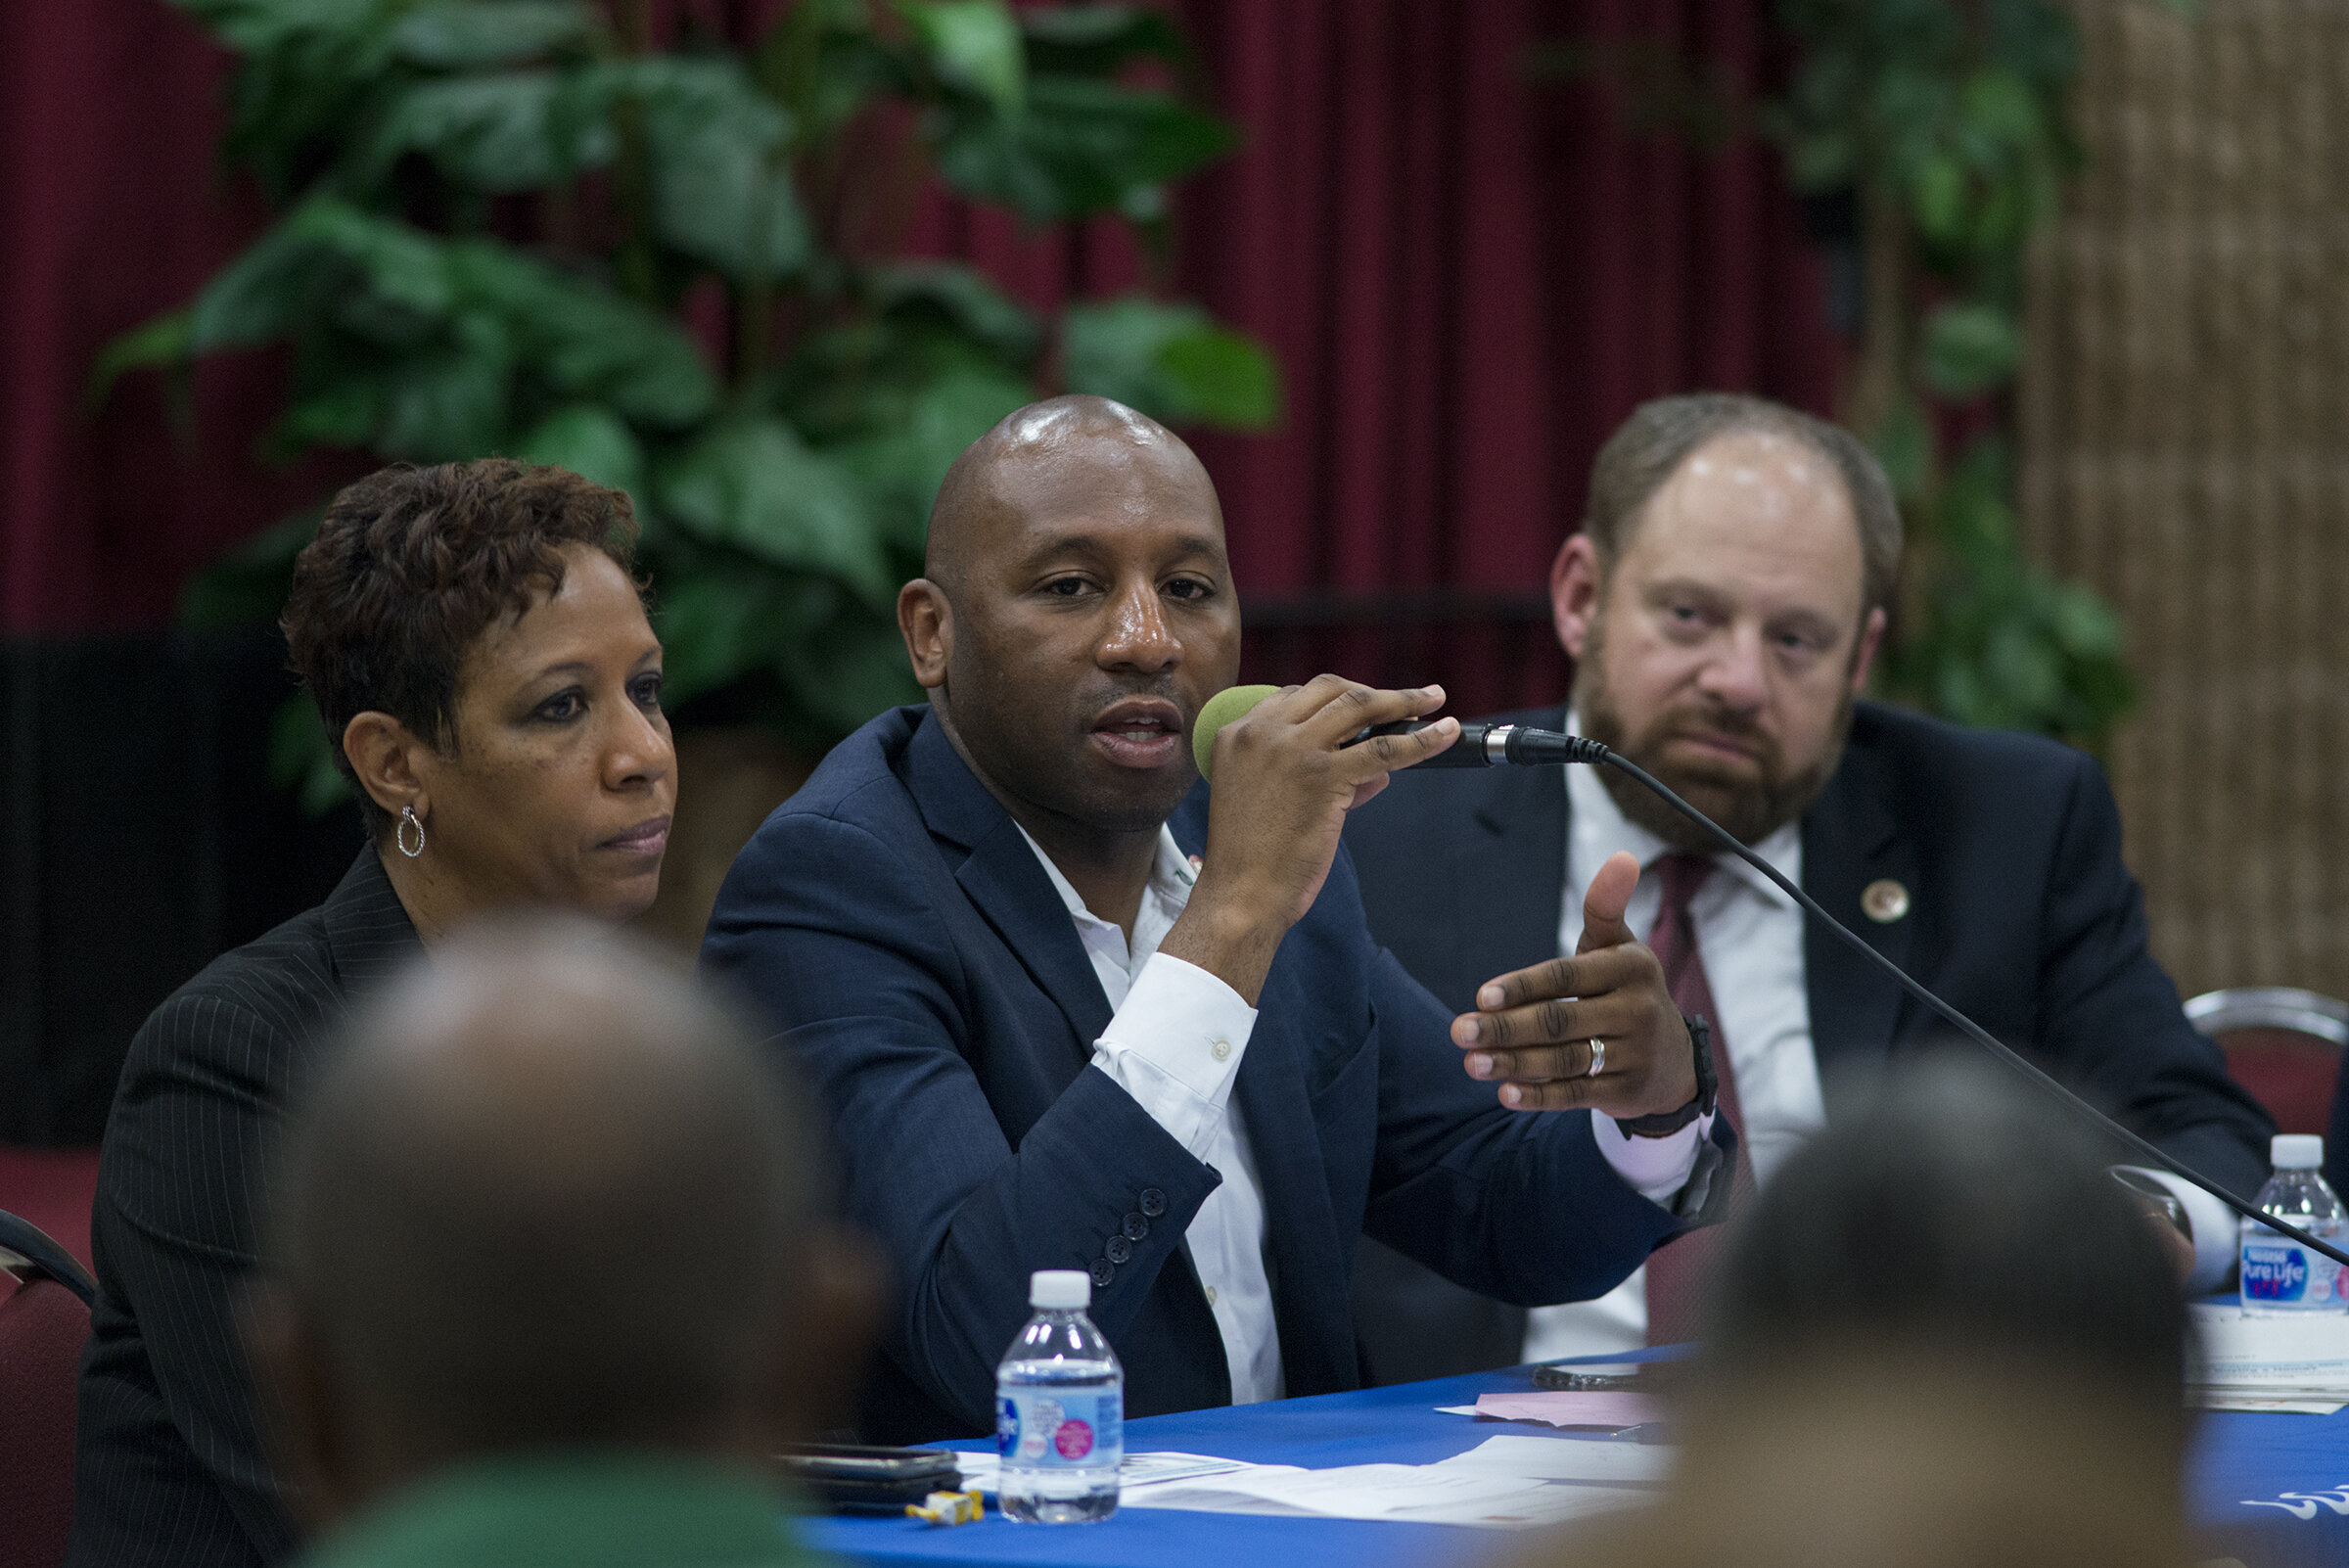 City Council Land Use Committee members Adrienne Adams, Donovan Richards and Rory Lancman voted in favor of a map change to ban jails on Rikers Island. All three councilmembers represent parts of Queens. Photo by Jeff Reed via City Council/Flickr.